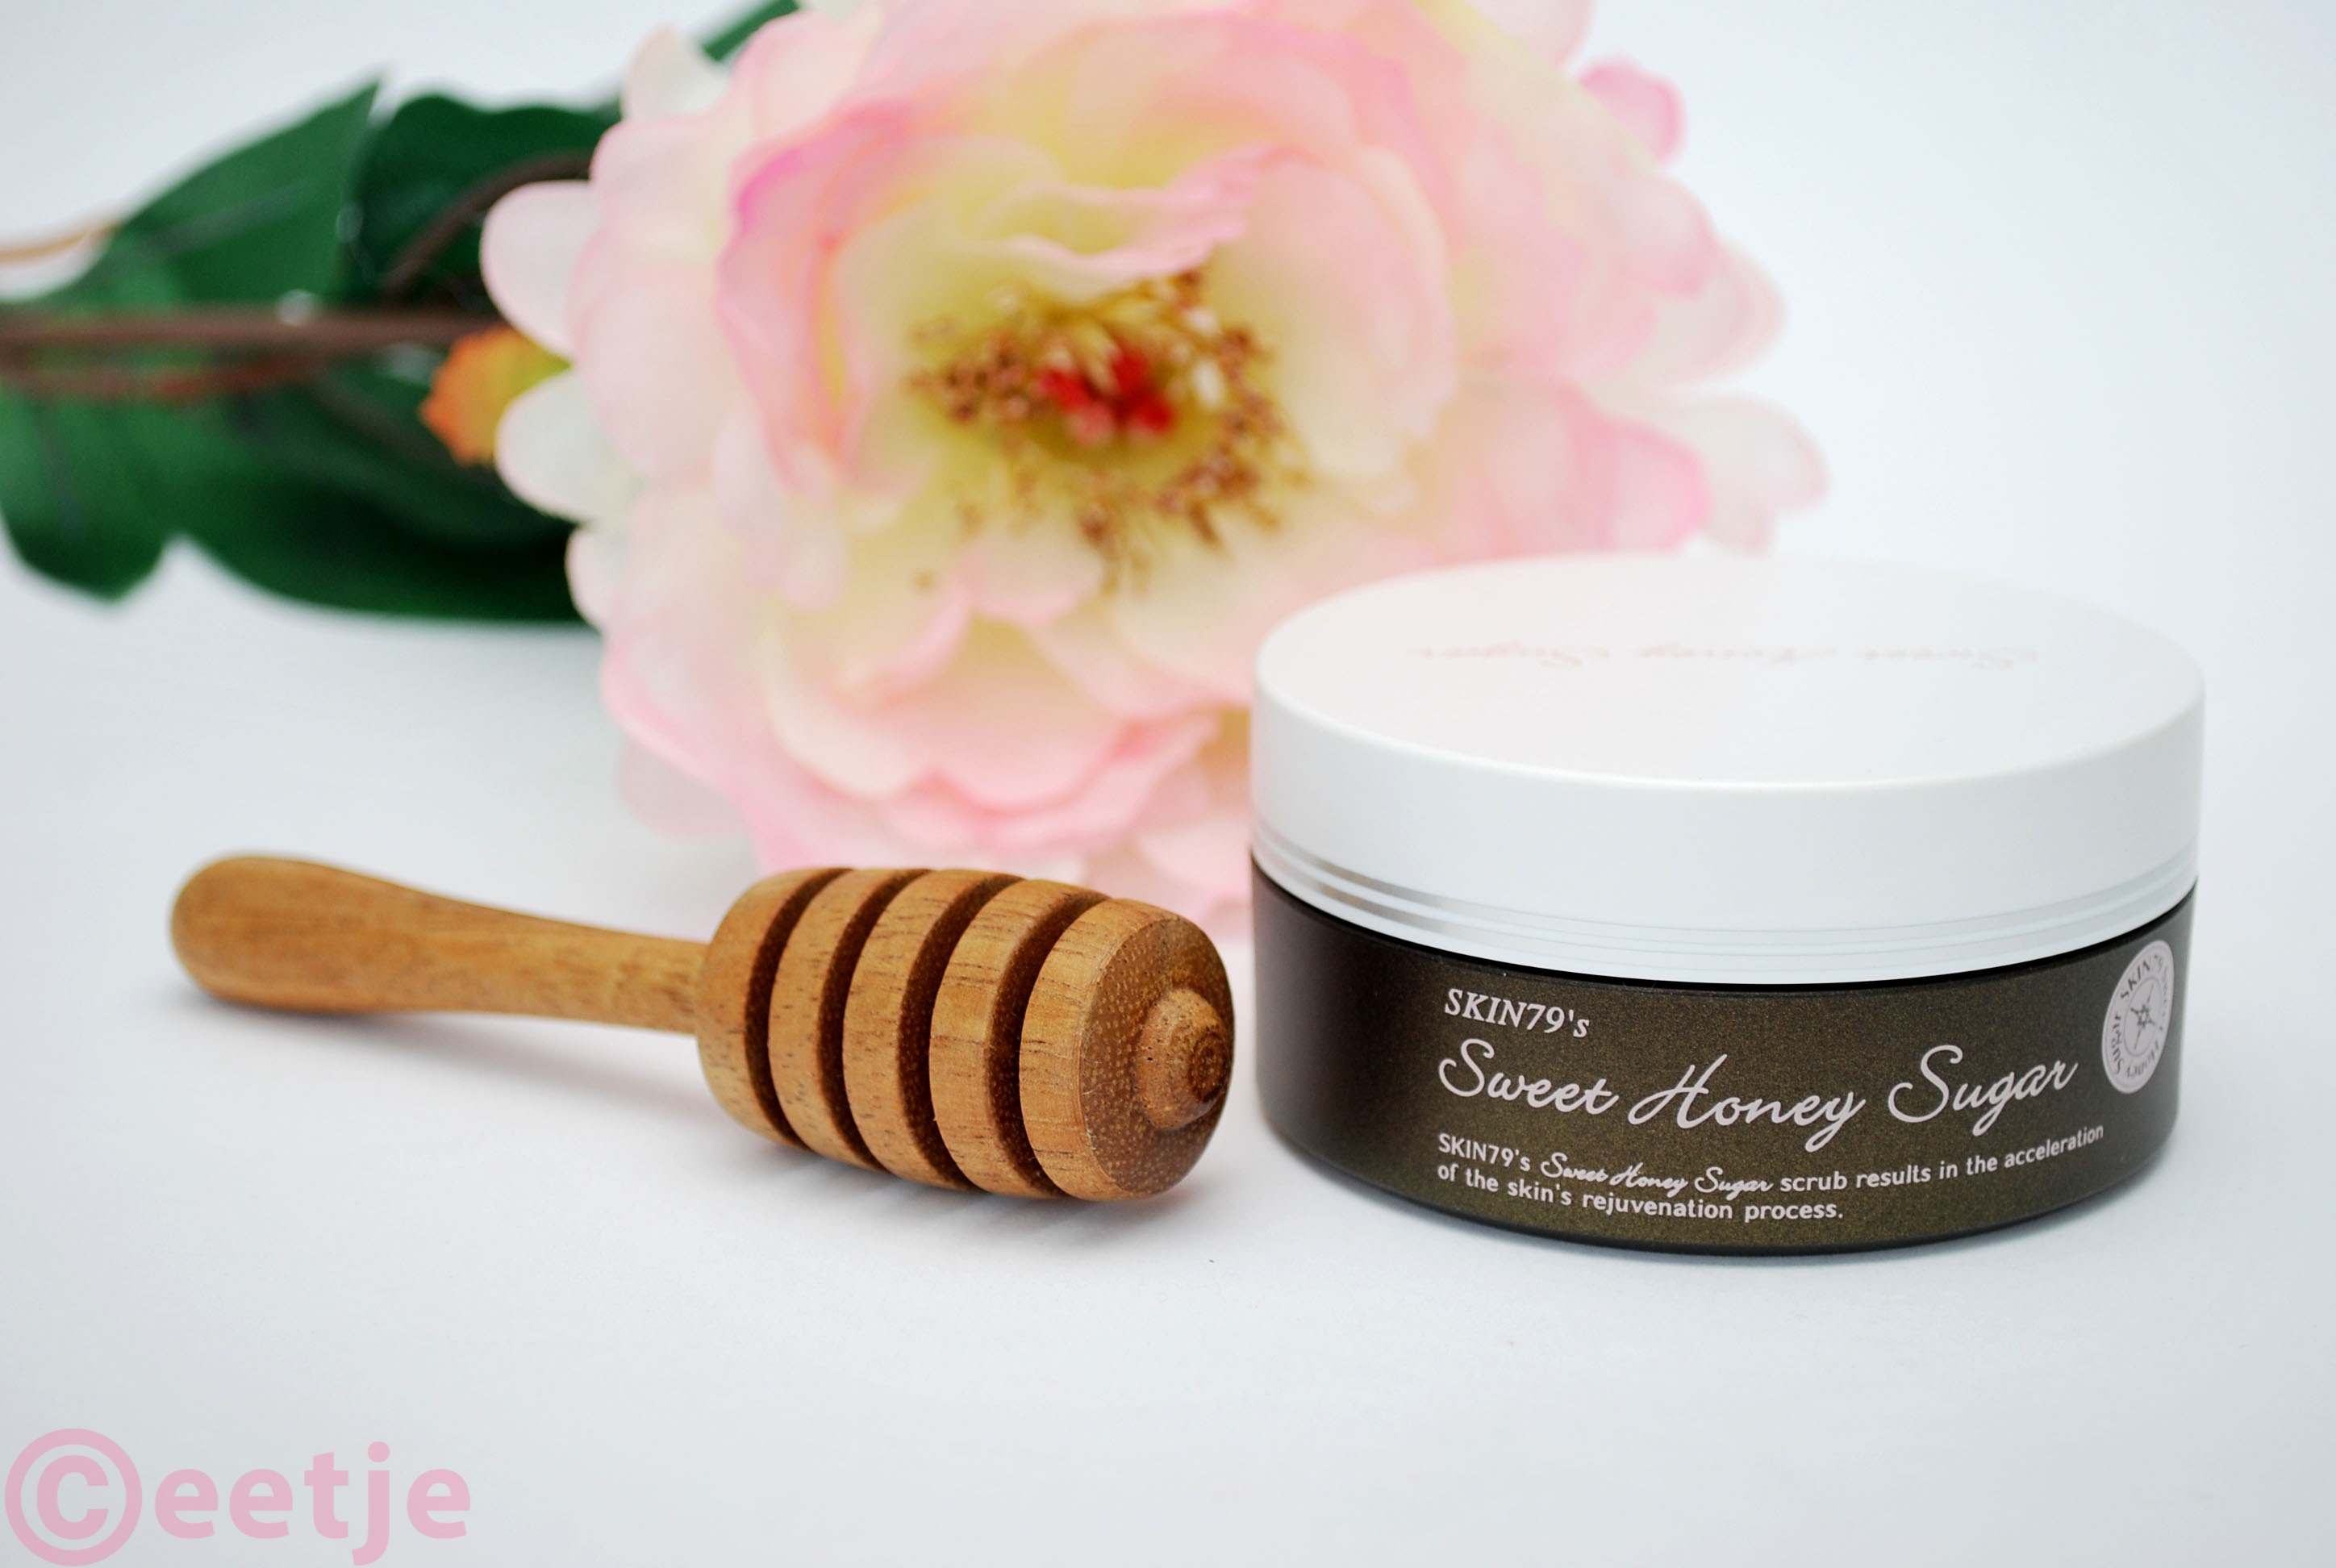 Honing bruine suiker scrub review Skin 79 sweet honey face scrub